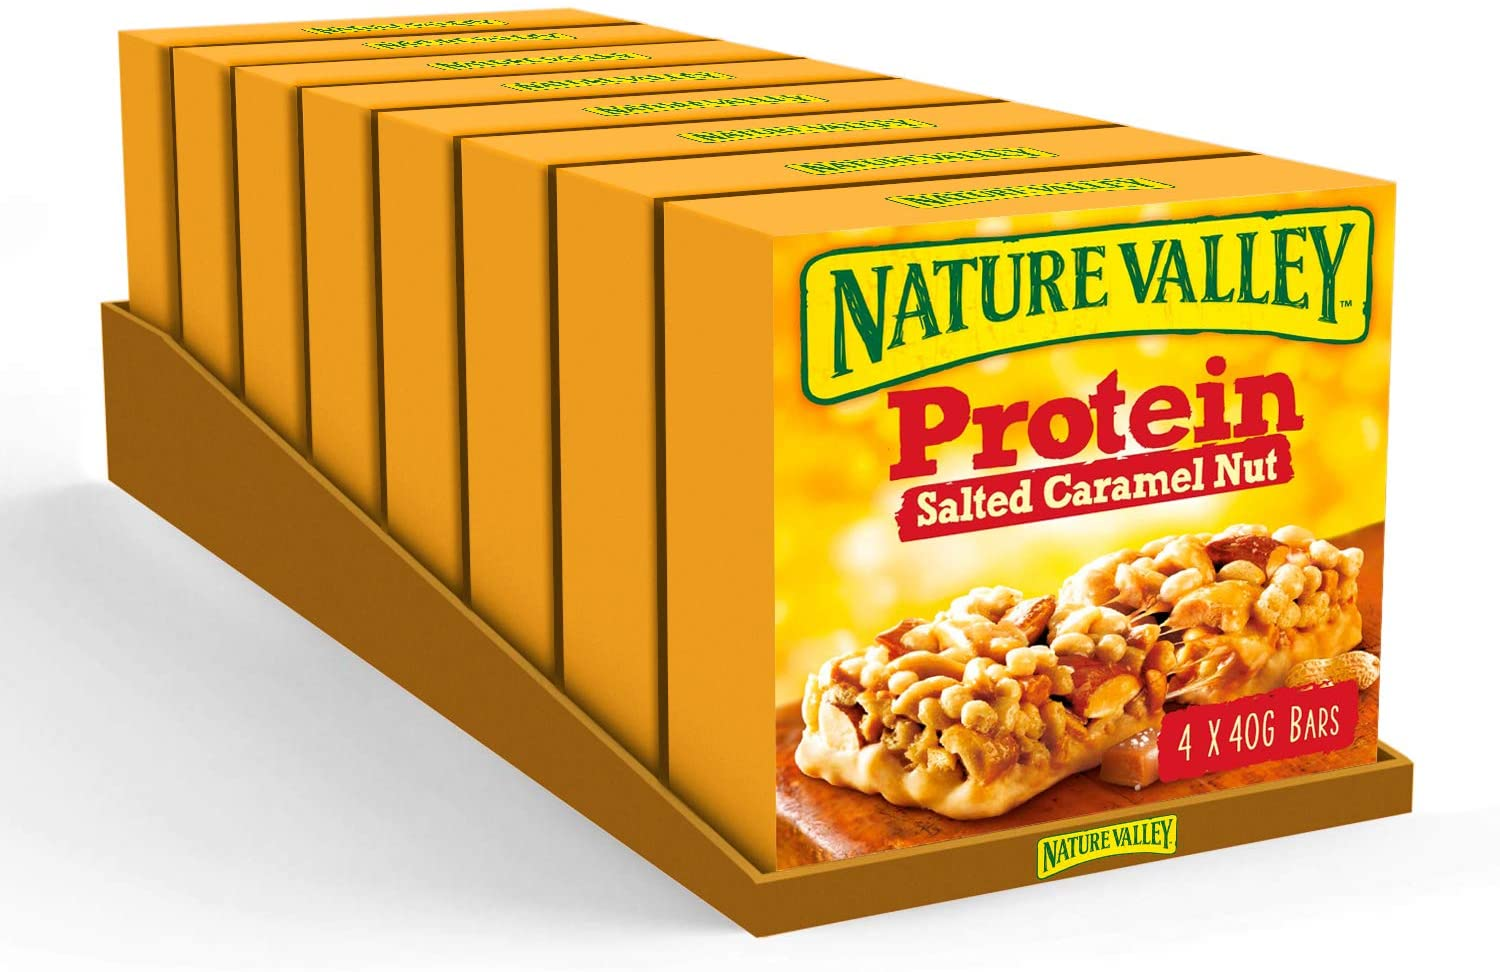 Nature Valley Protein Bar- Salted Caramel Nut Review